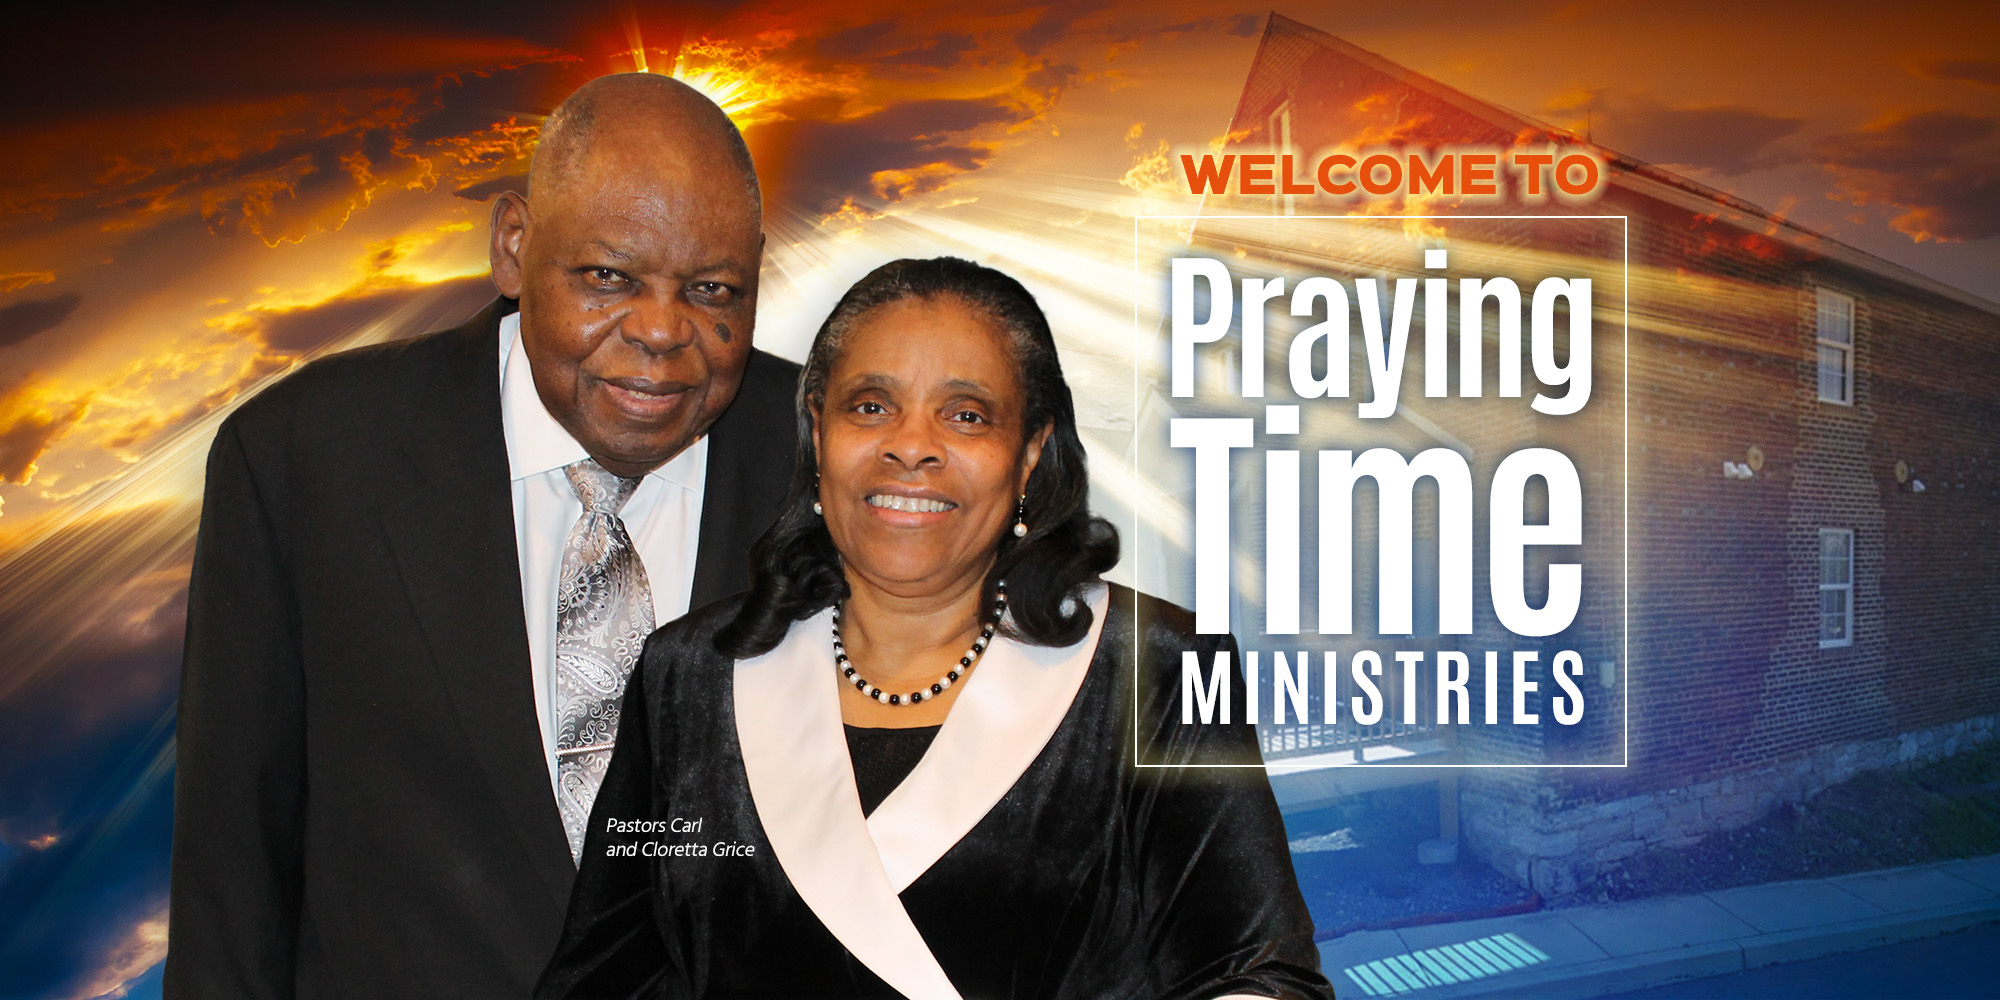 Praying Time Ministries